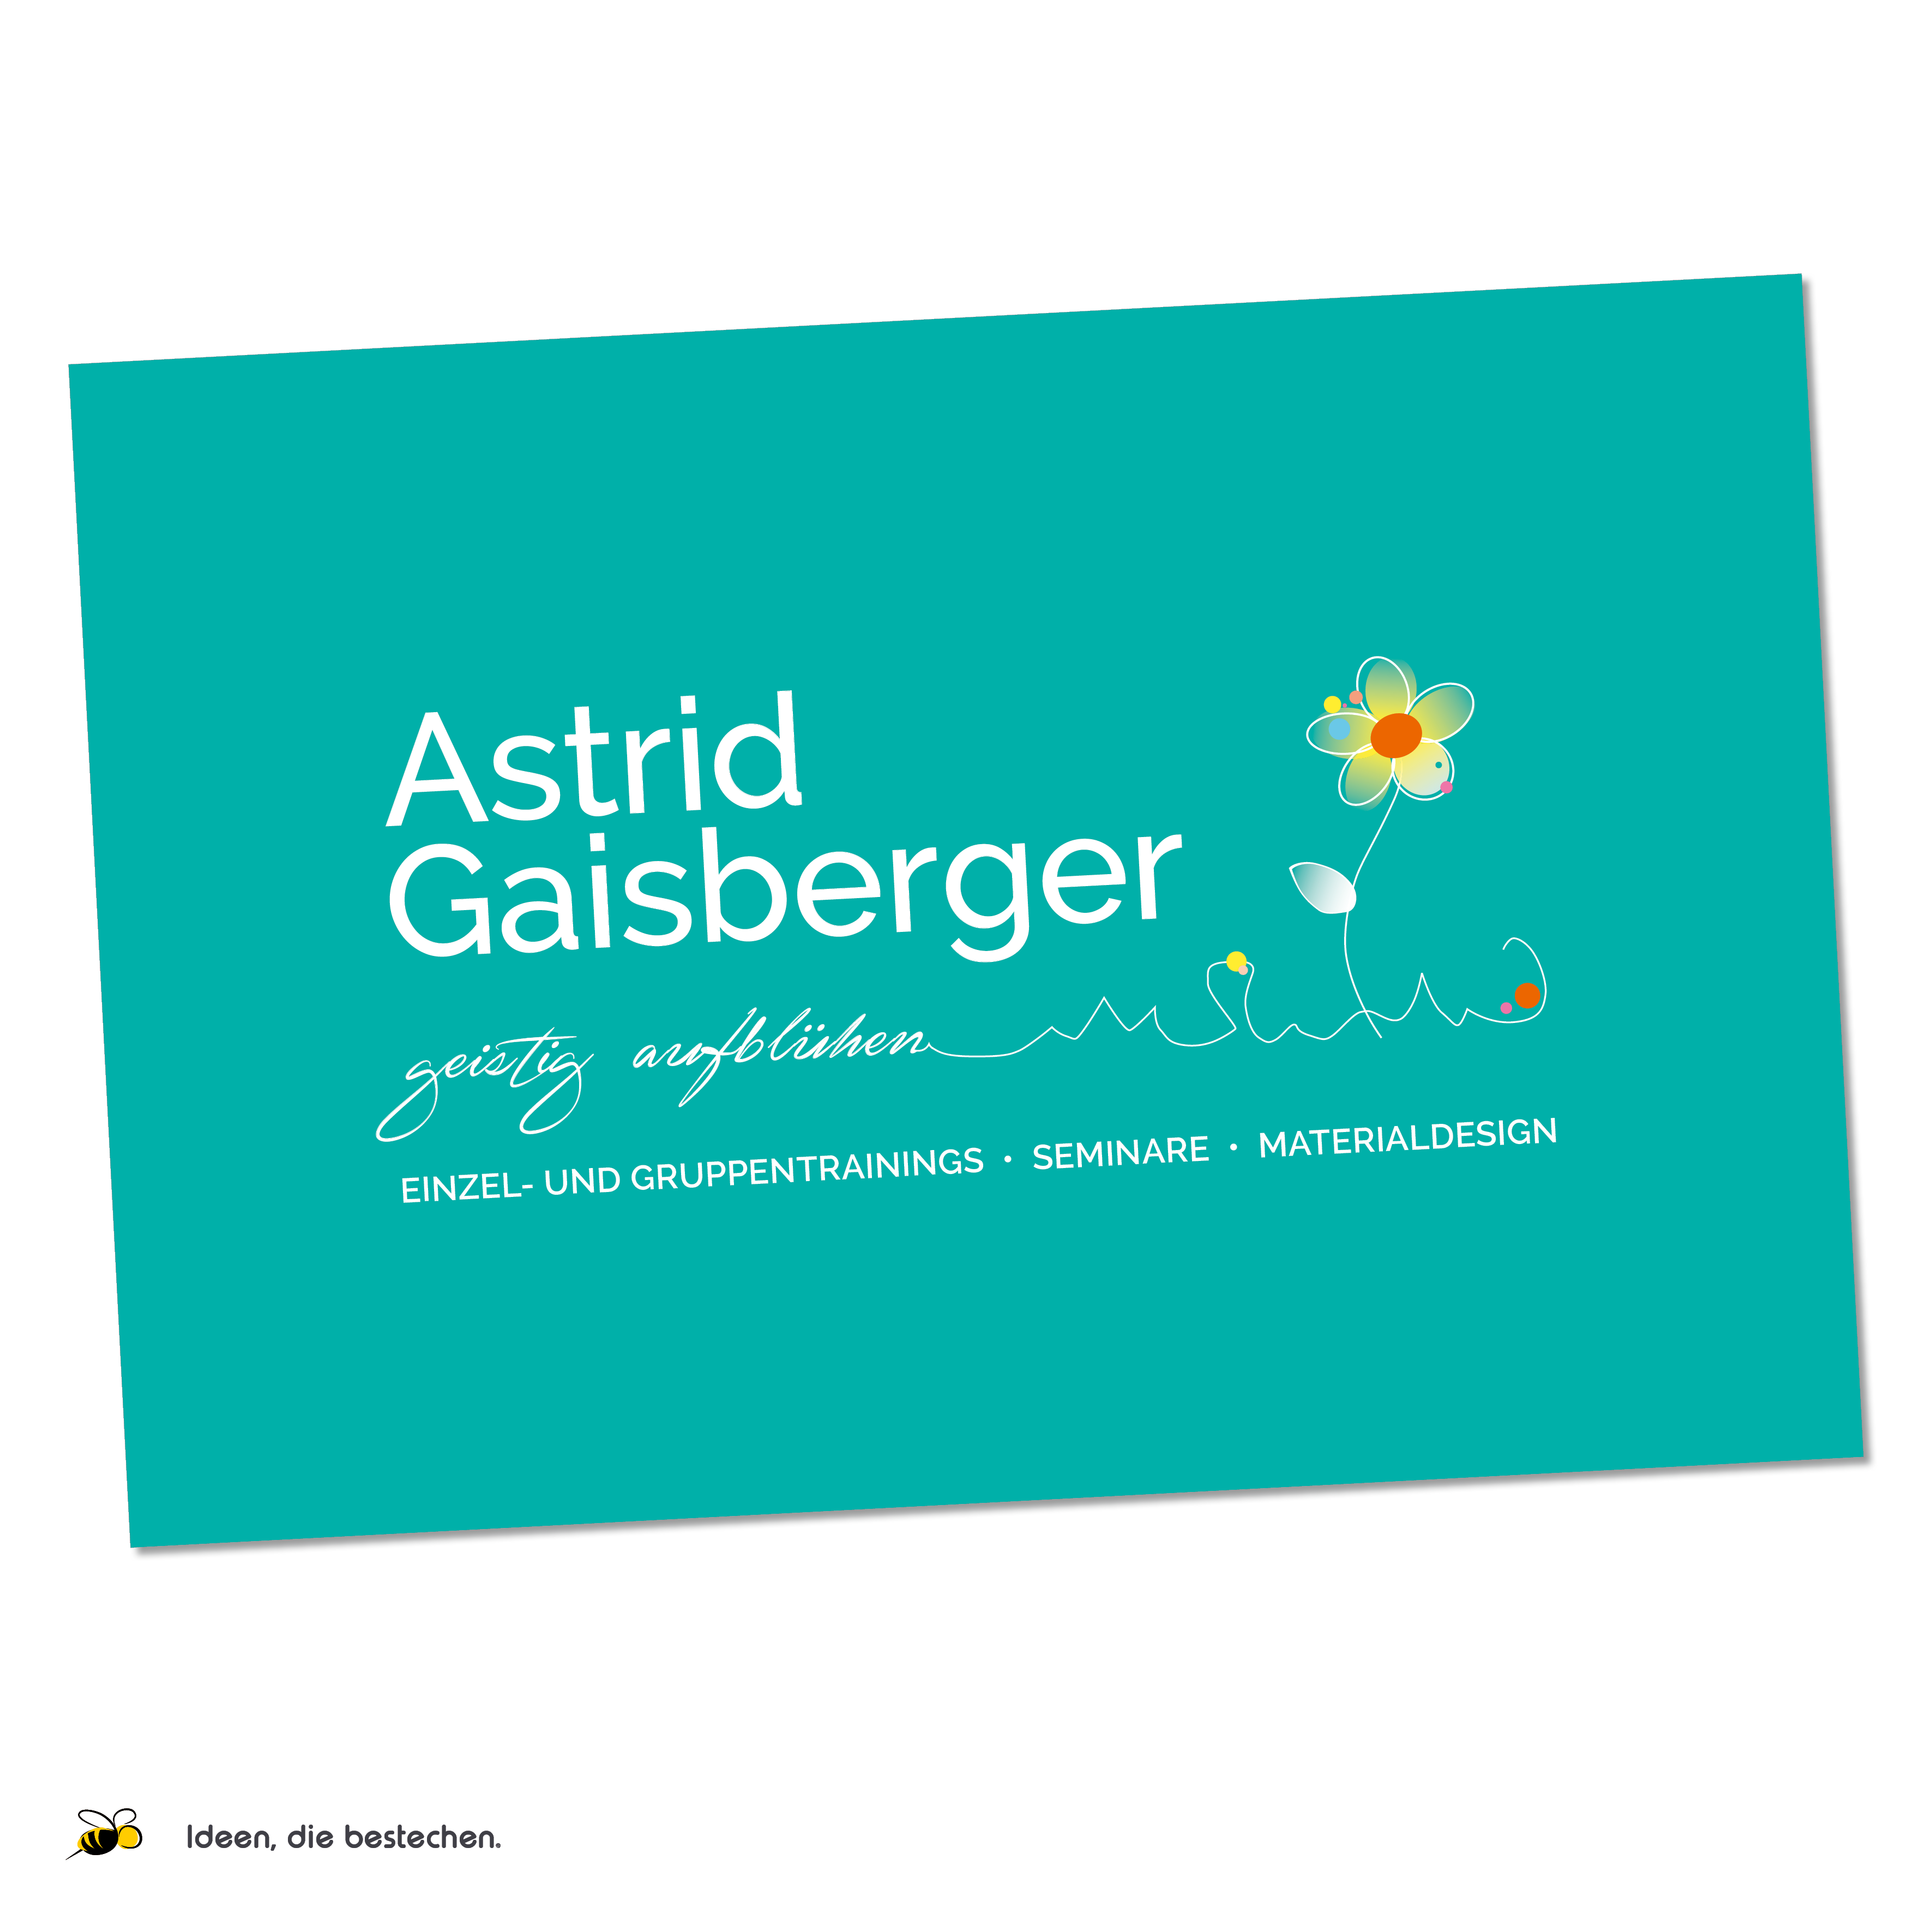 Referenzen kreativbiene: Corporate Design Astrid Gaisberger - geistig aufblühen